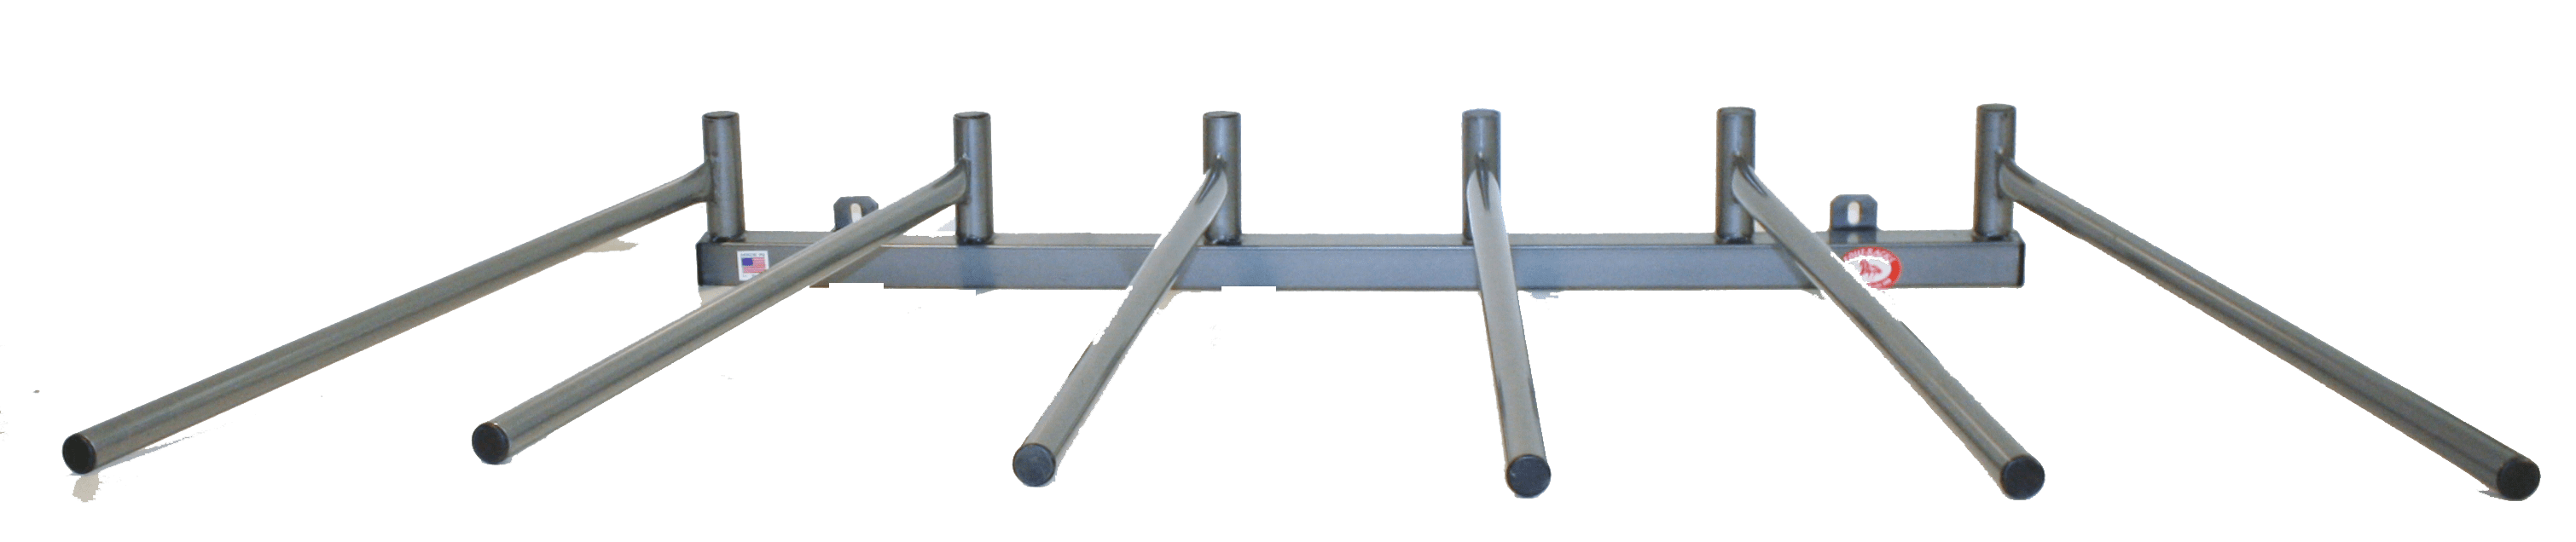 saddle pad rack with 6 arms in wall mount with horizontal configuration